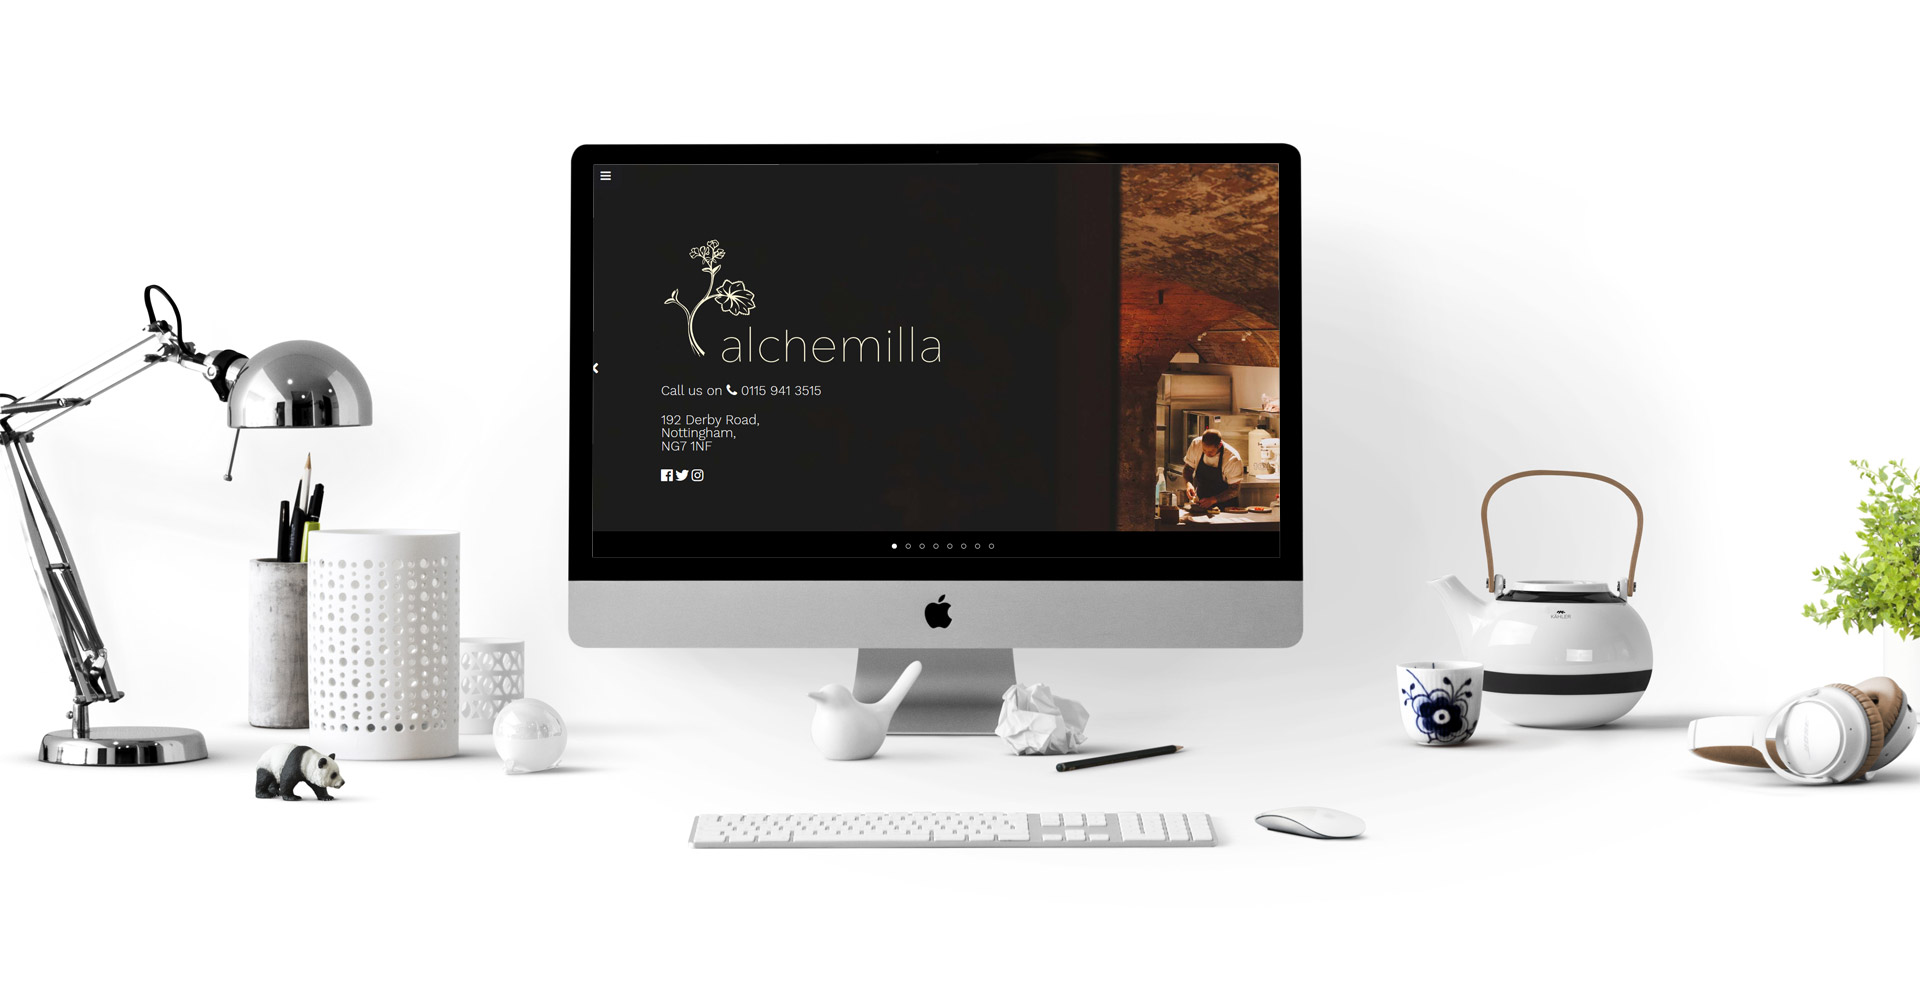 Alchemilla Restaurant Nottingham - website designed and developed by Fifteen IT Ltd